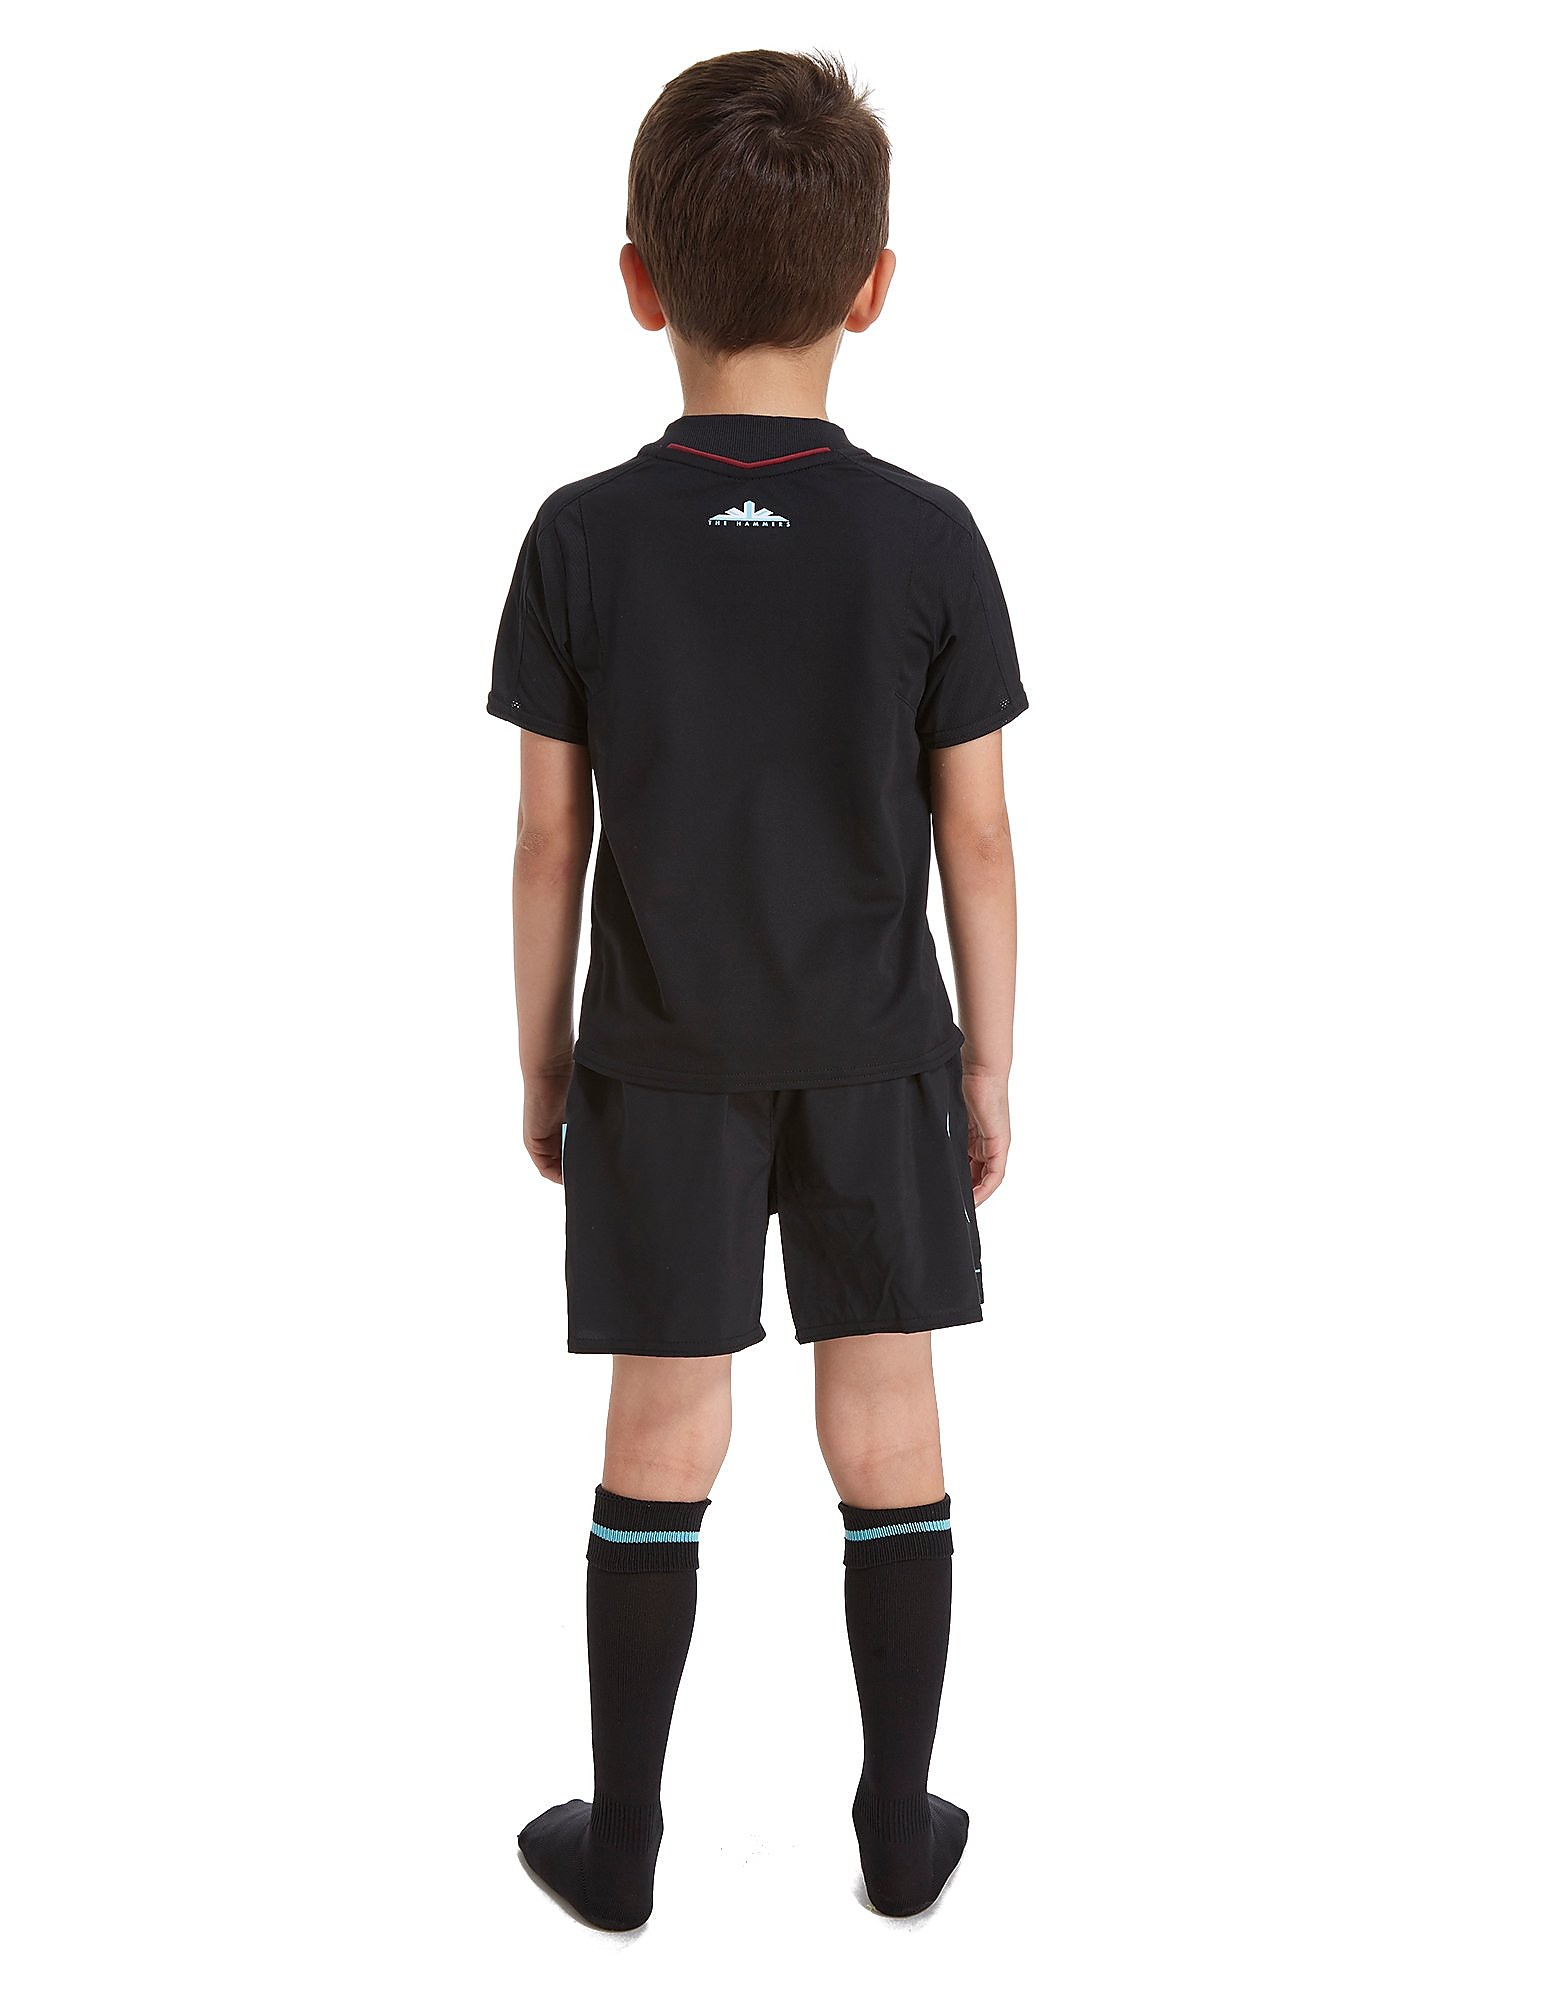 Umbro West Ham Utd 2017/18 Away Kit Children